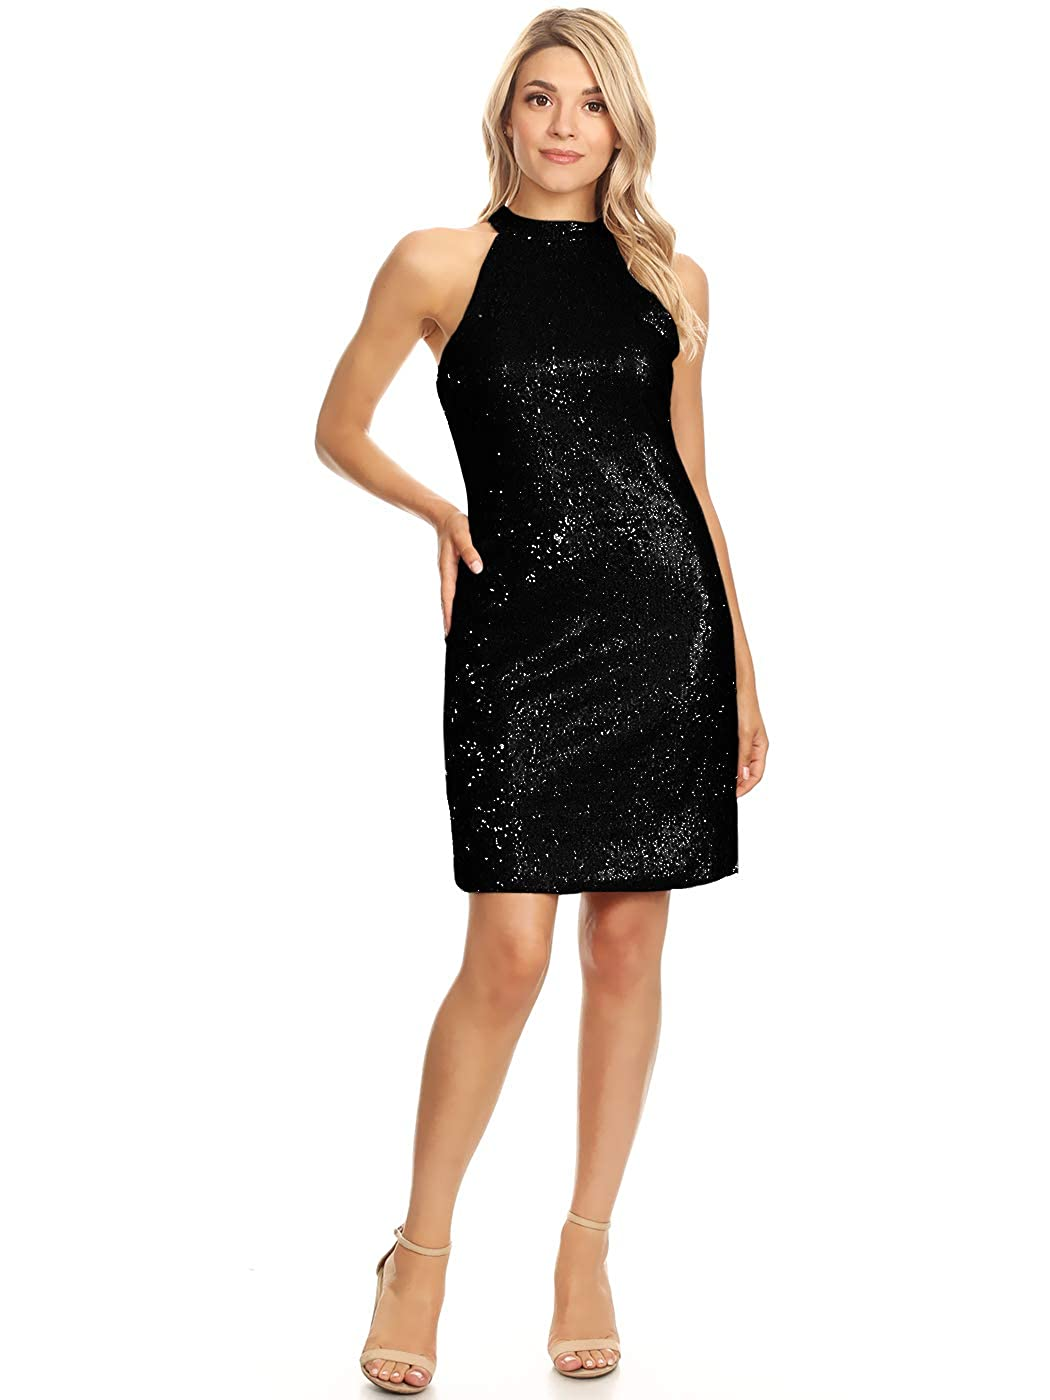 8cba4566a SPARKLING HIGH NECK HALTER PENCIL SHIFT DRESS. A comfy slightly loose  bodycon fit party dress with a hidden zipper back and two faux pearl toggle  fastenings ...